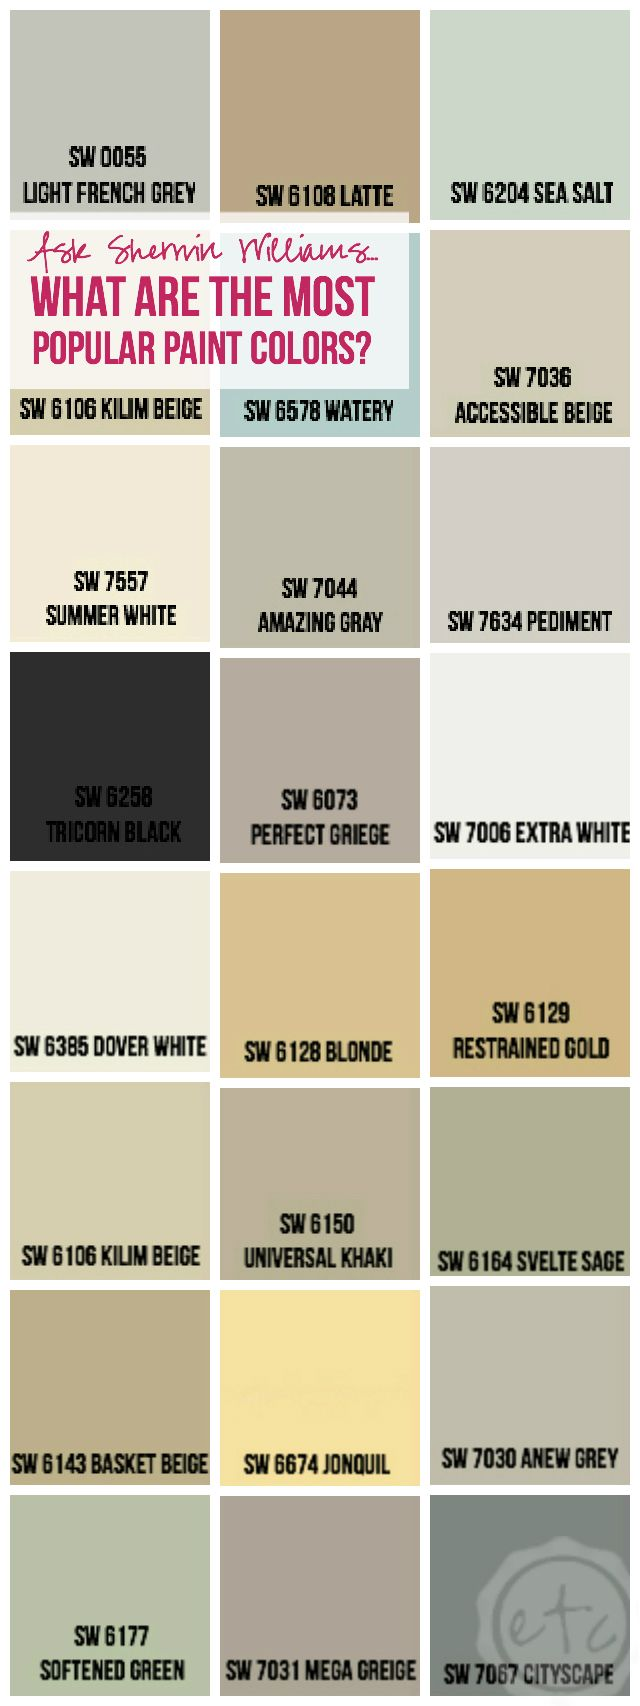 63 Best Images About Sherwin Williams Rainwashed On Pinterest Paint Colors Rain And Wall Colors